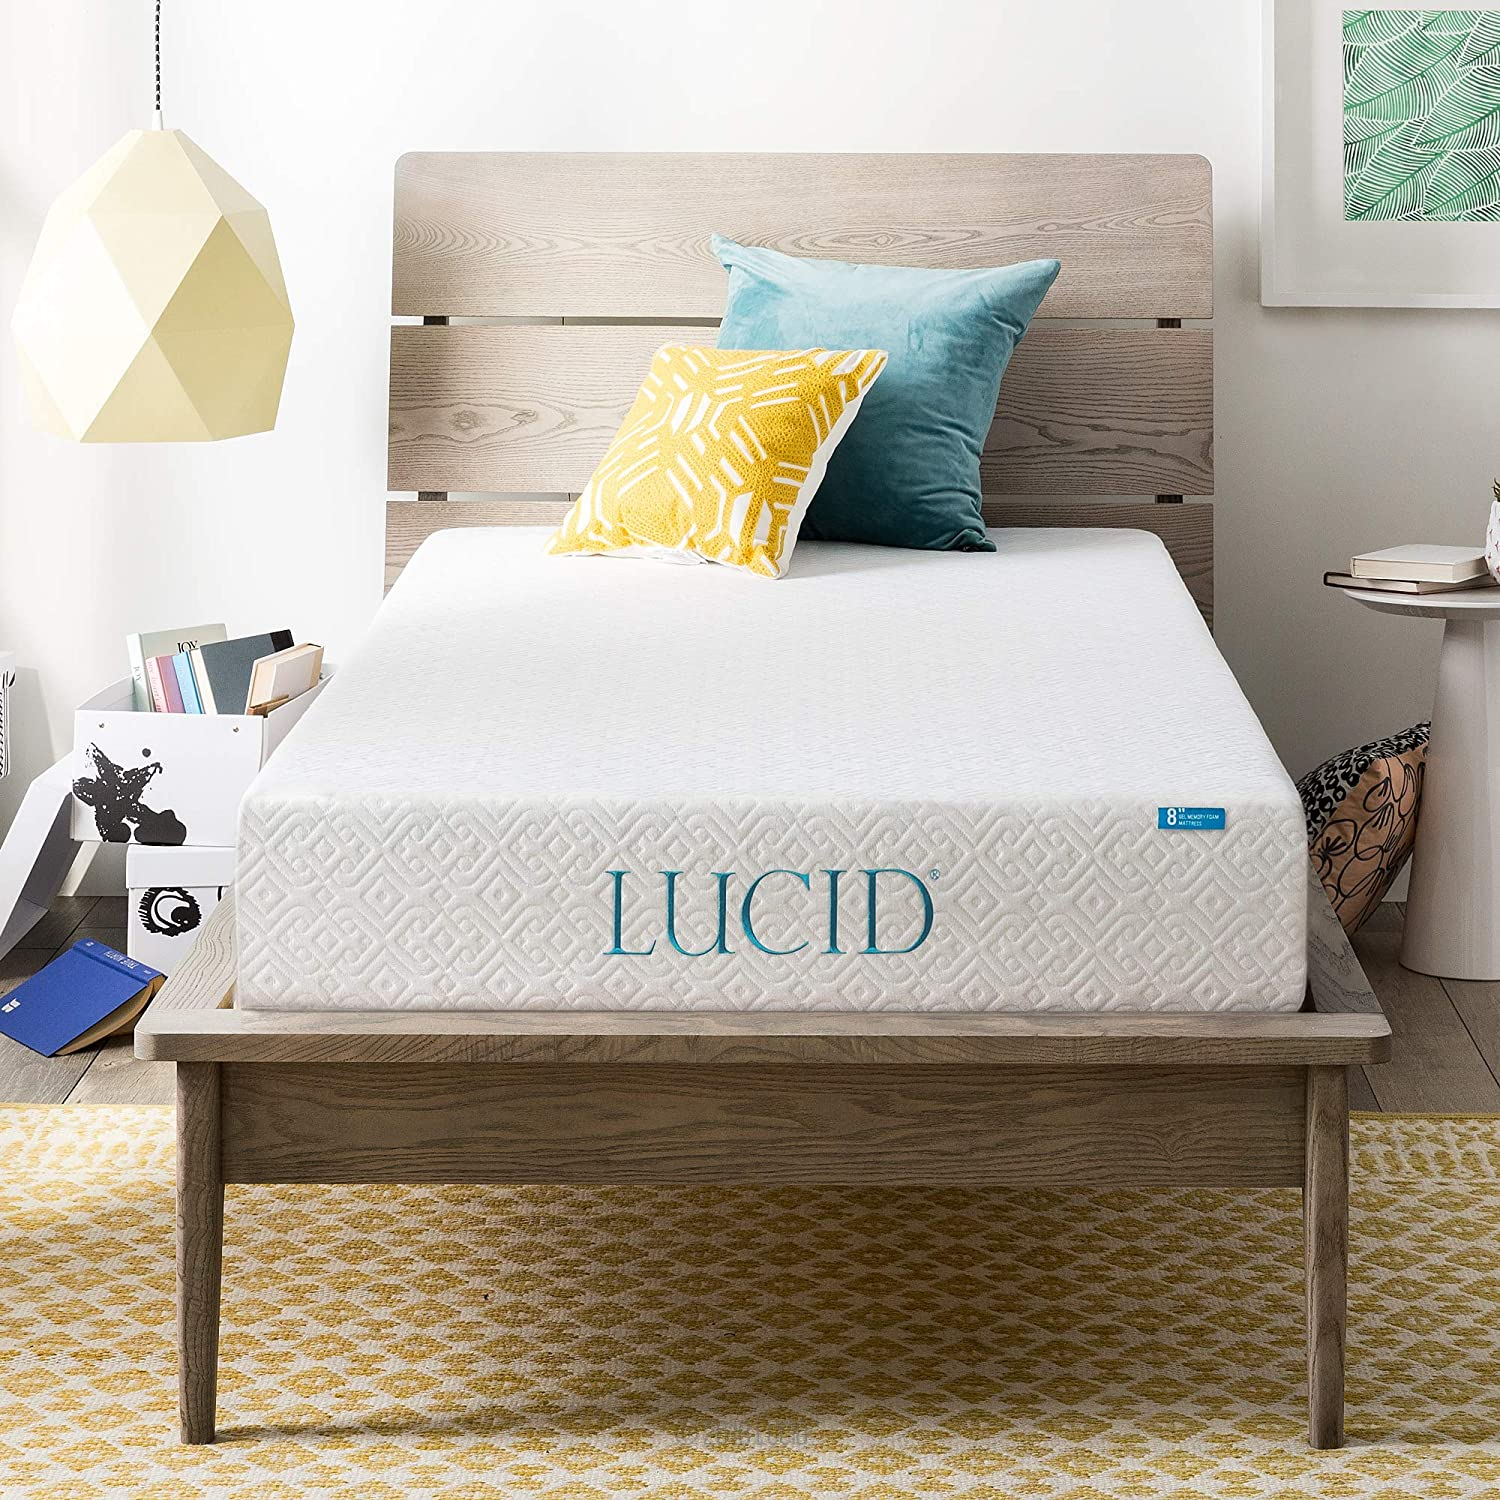 Amazon.com: LUCID 8 Inch Gel Infused Memory Foam Mattress - Medium Firm  Feel - CertiPUR-US Certified - 10 Year U.S. warranty - Twin XL: Kitchen &  Dining